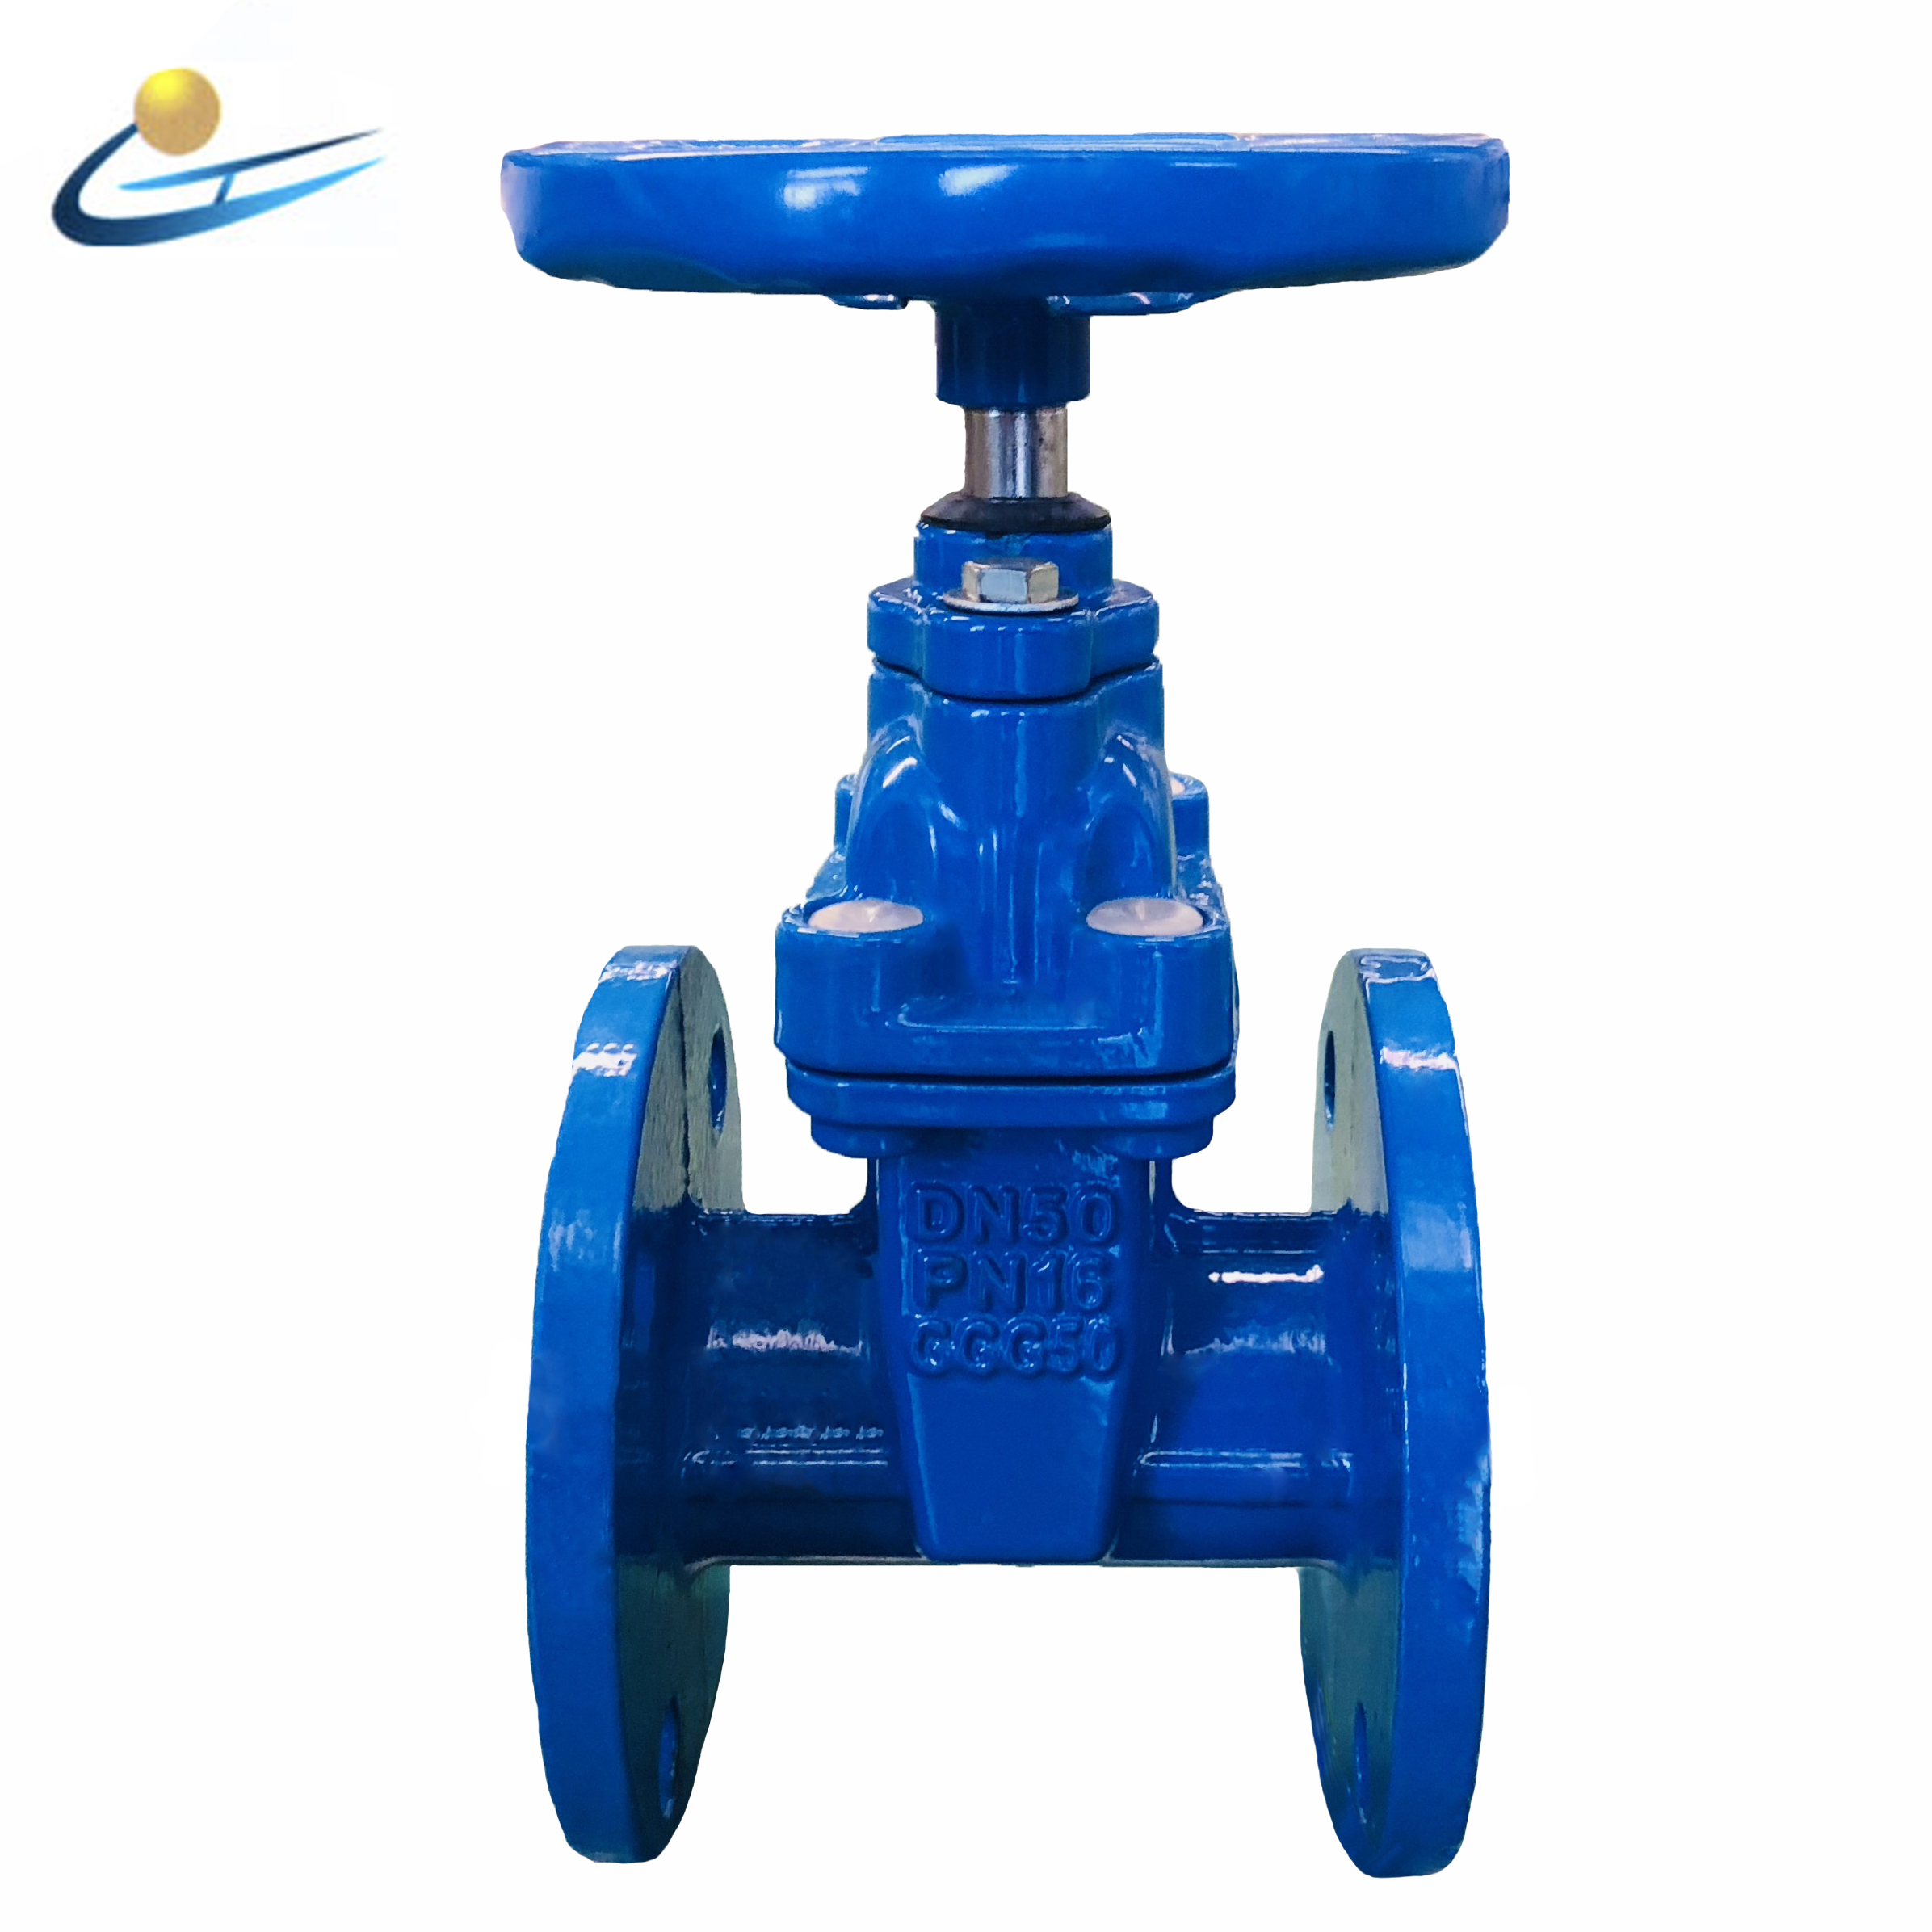 GGG50 DIN 3352 F4 ductile iron gate <strong>valve</strong> with prices soft seal cast iron sluice gate <strong>valve</strong>